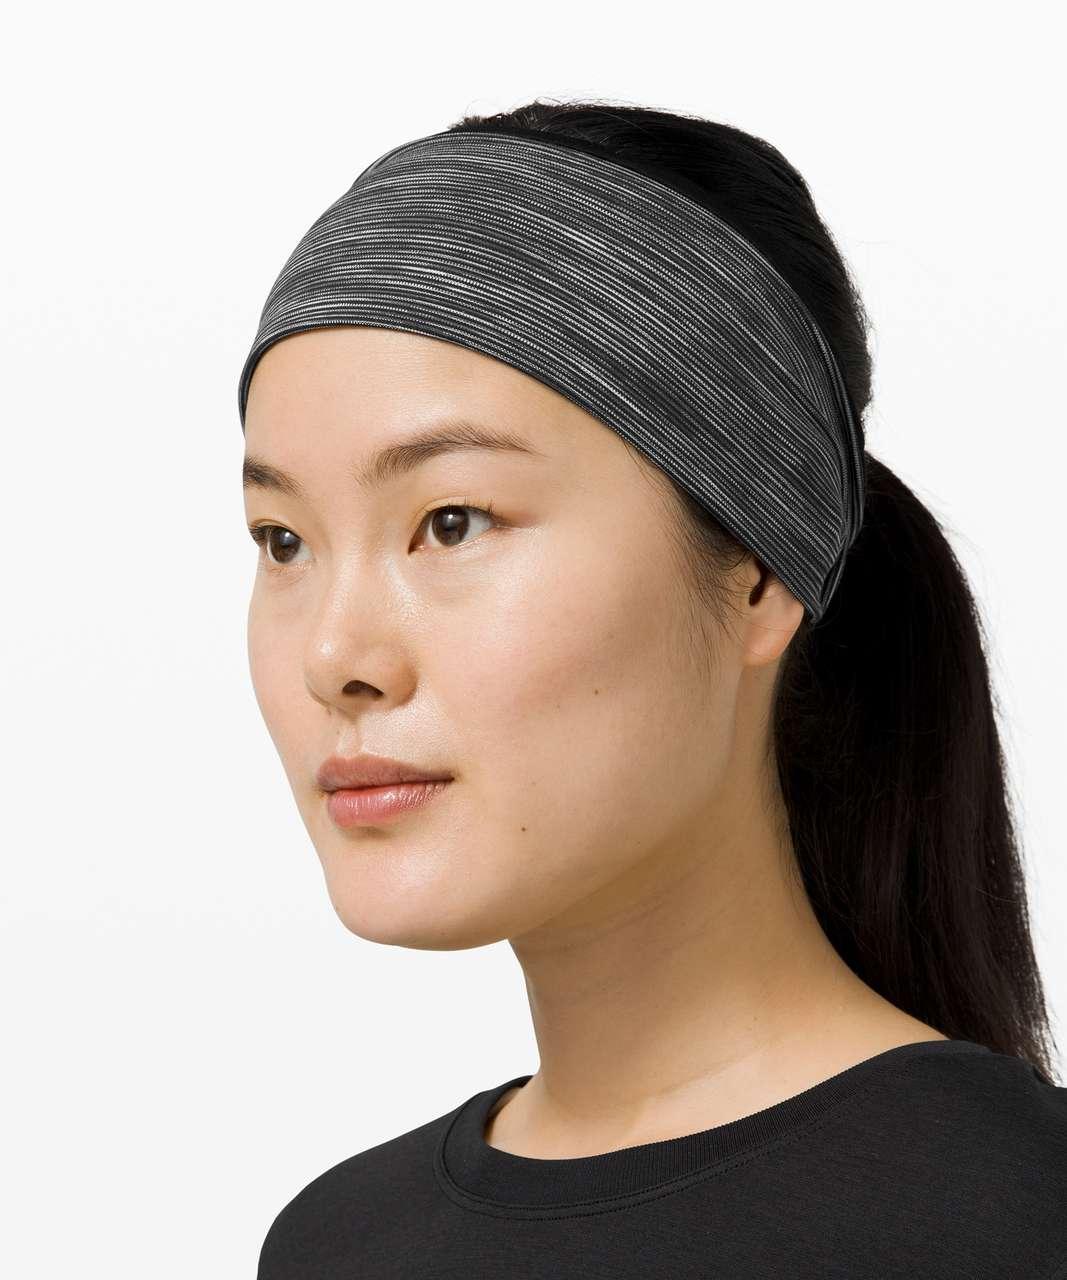 Lululemon Fringe Fighter Headband - Black / Wee Are From Space Dark Carbon Ice Grey